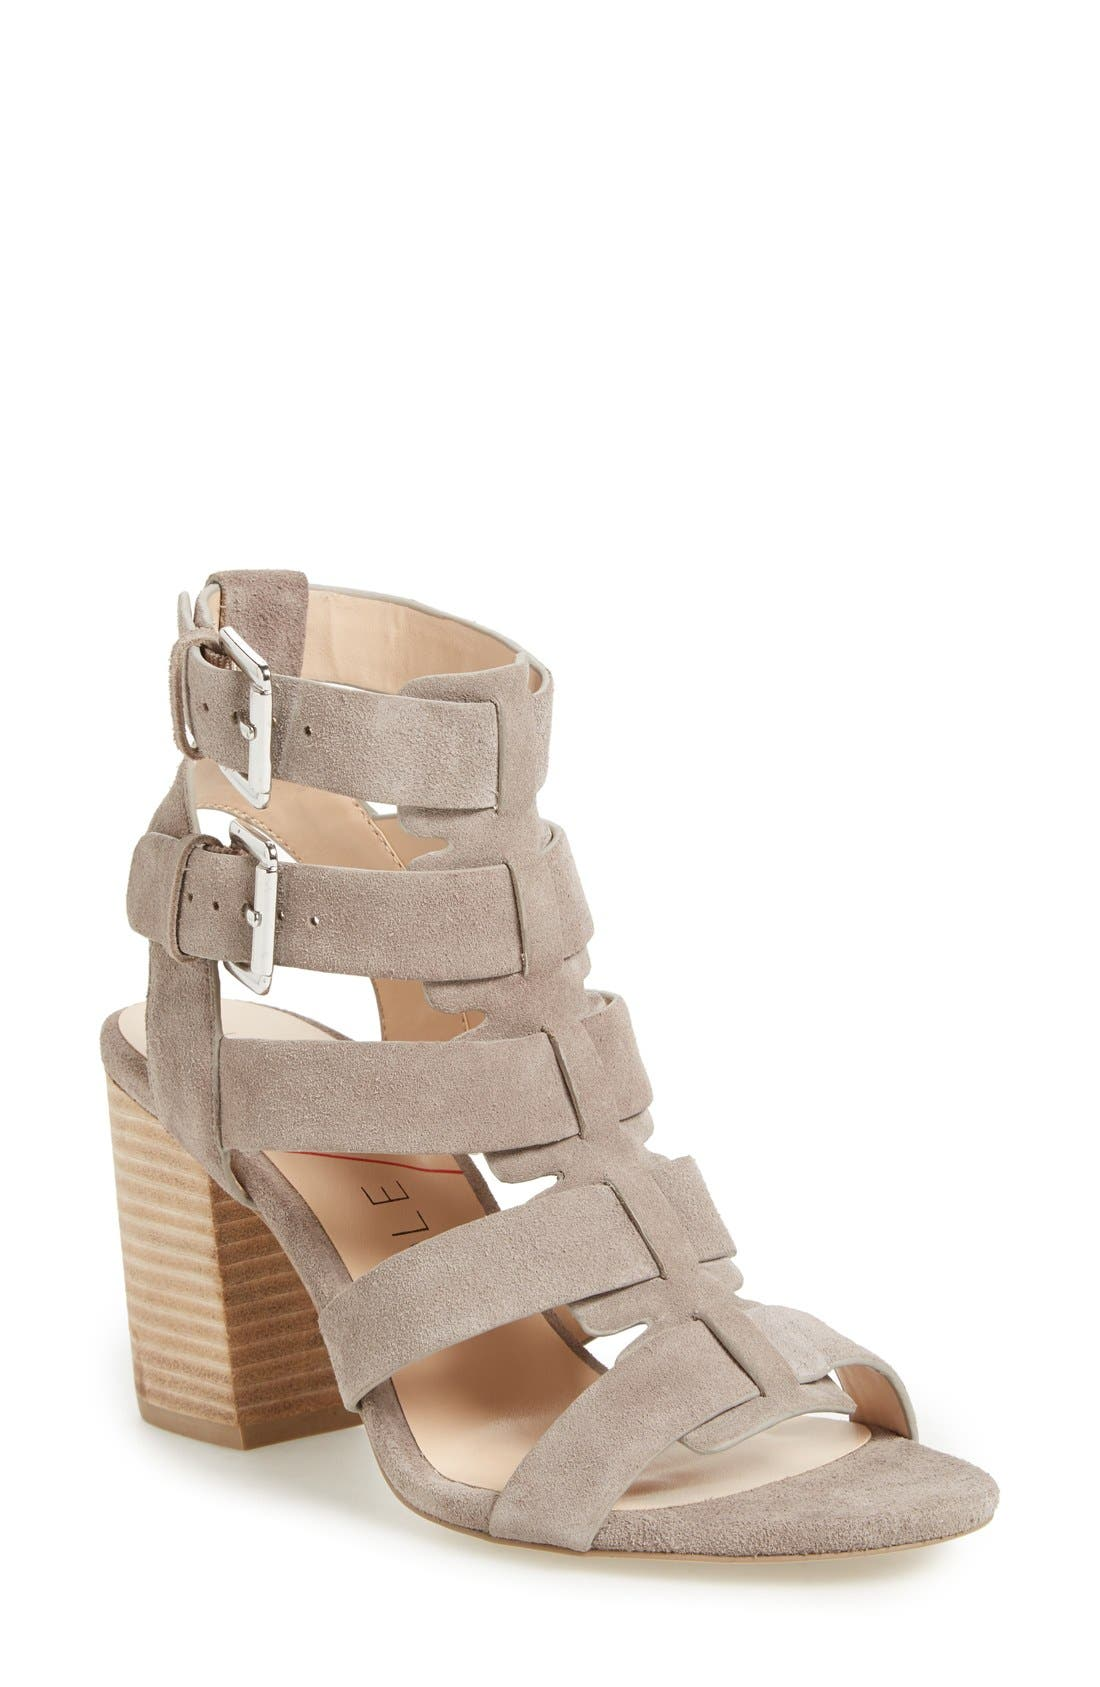 Alternate Image 1 Selected - Sole Society 'Rhea' Sandal (Women)